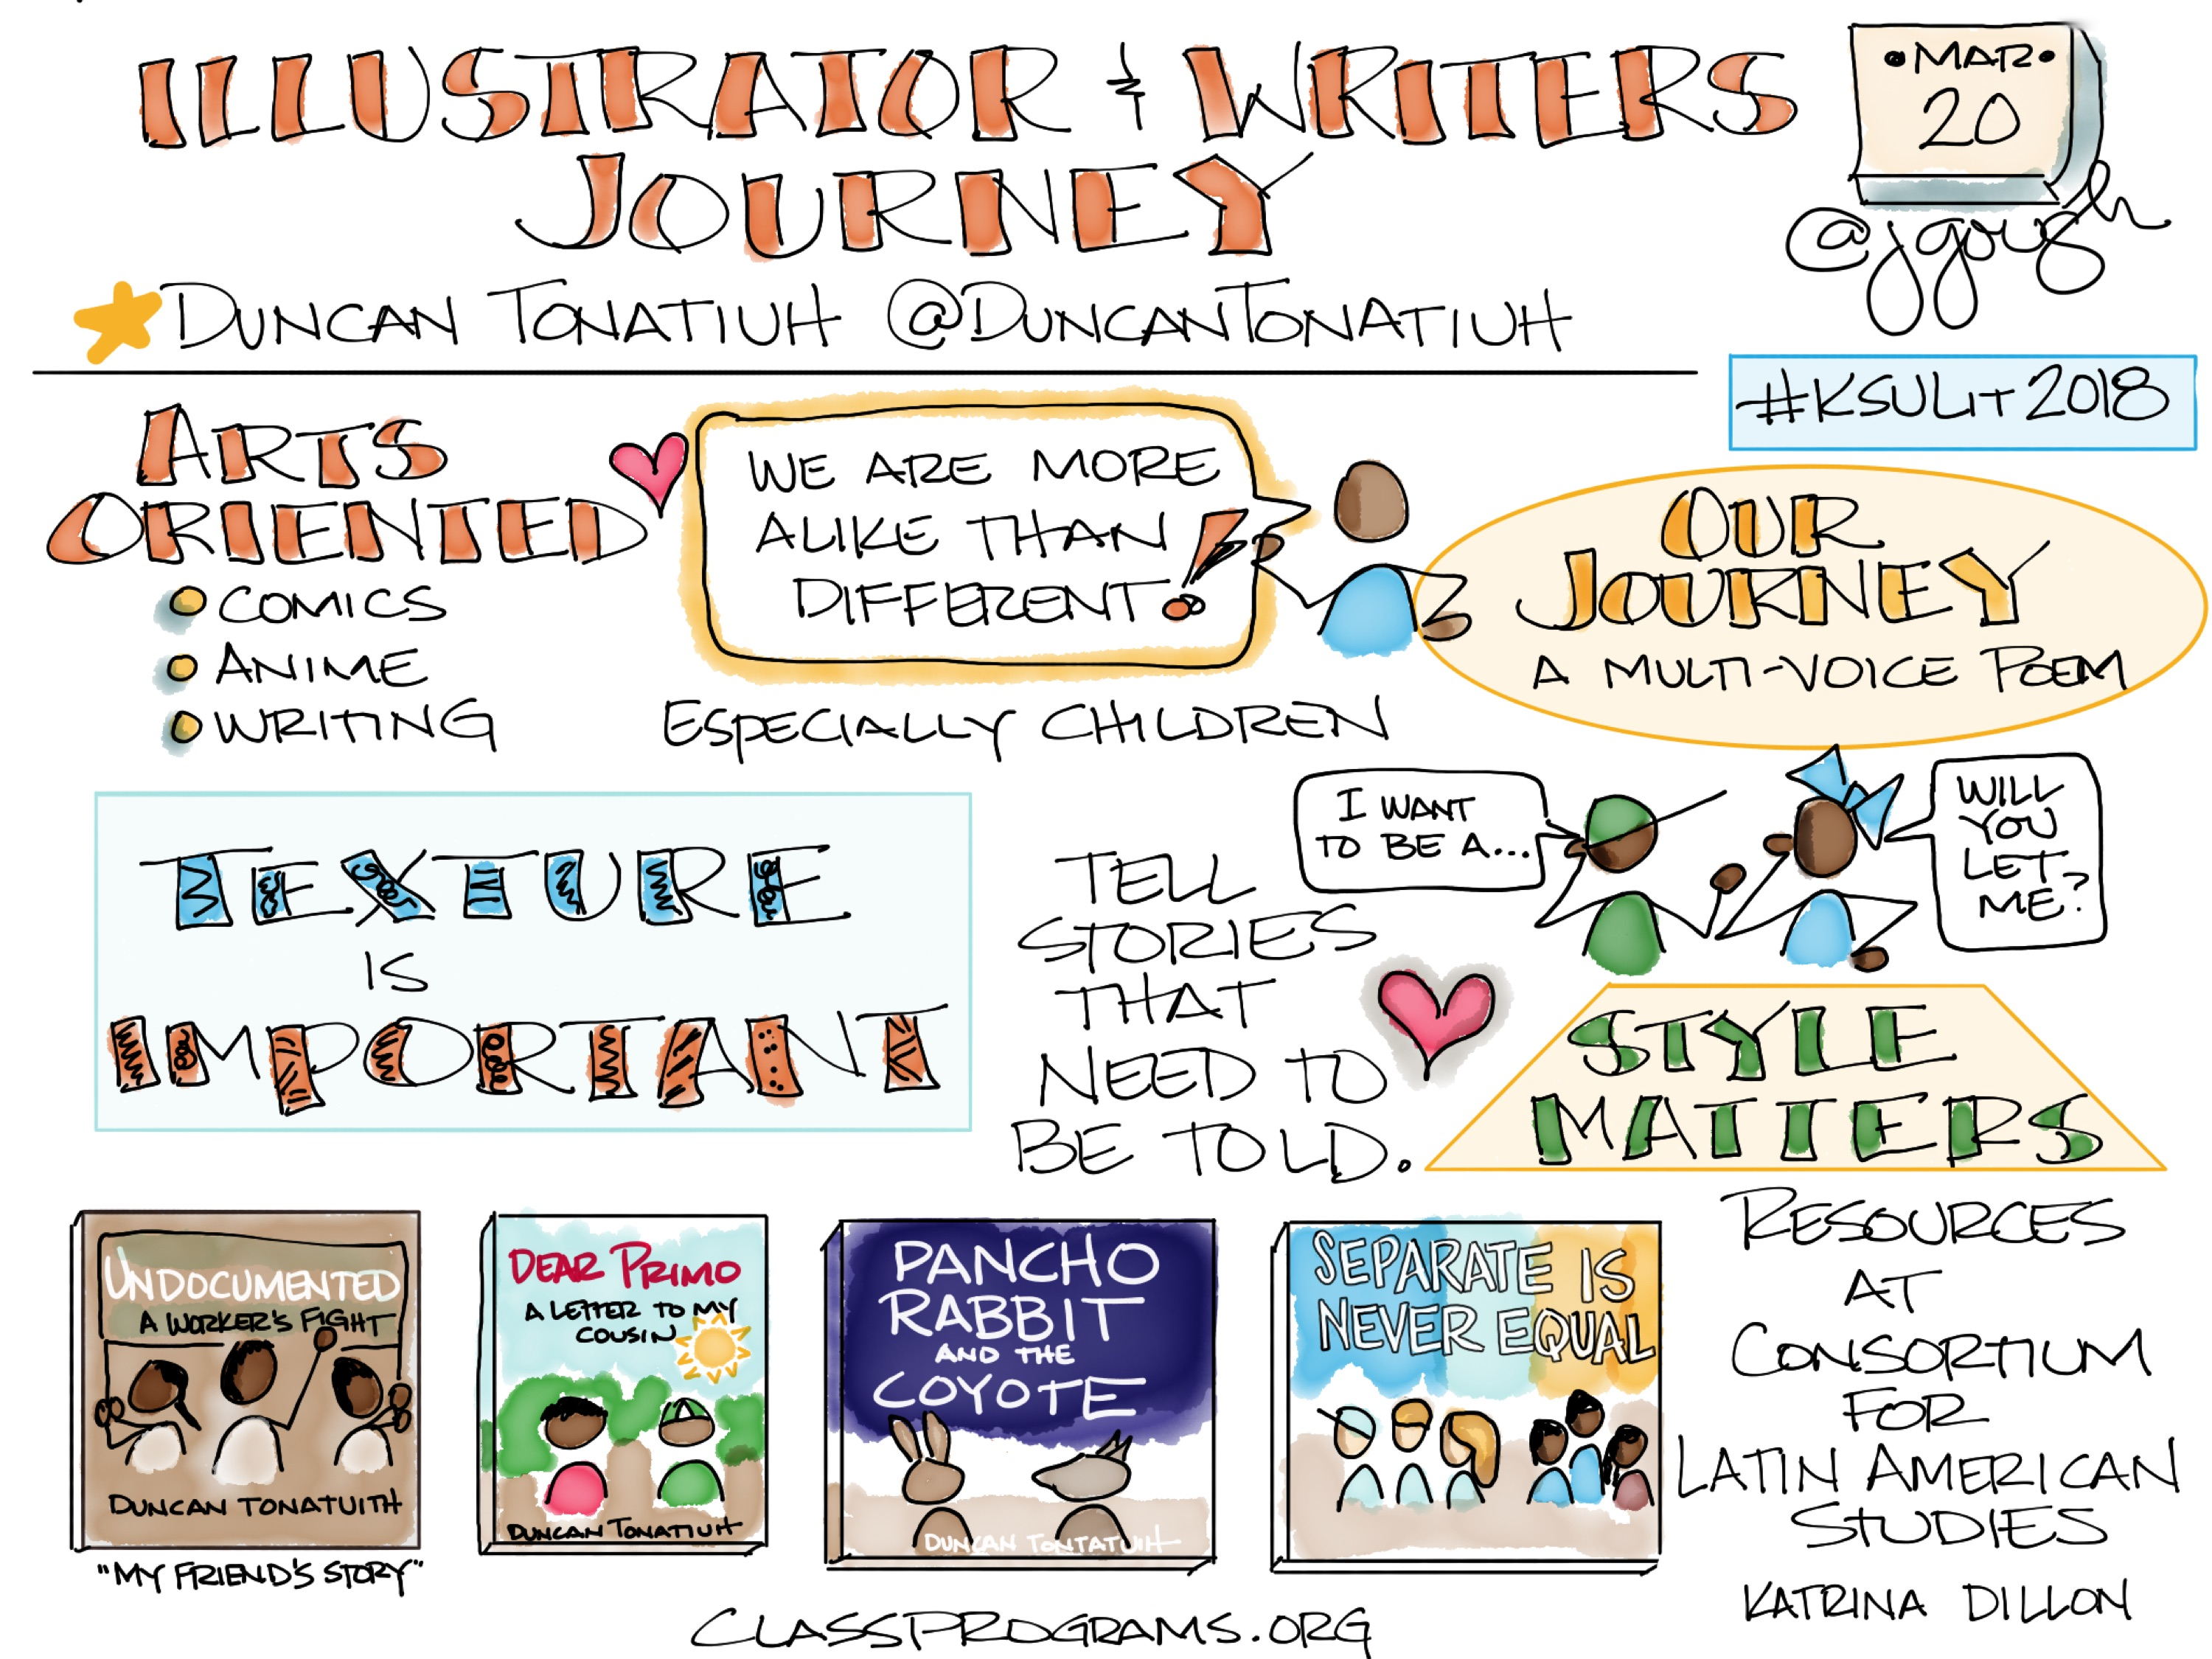 An Illustrator and Writer's Journey from @DuncanTonatiuh #KSULit2018